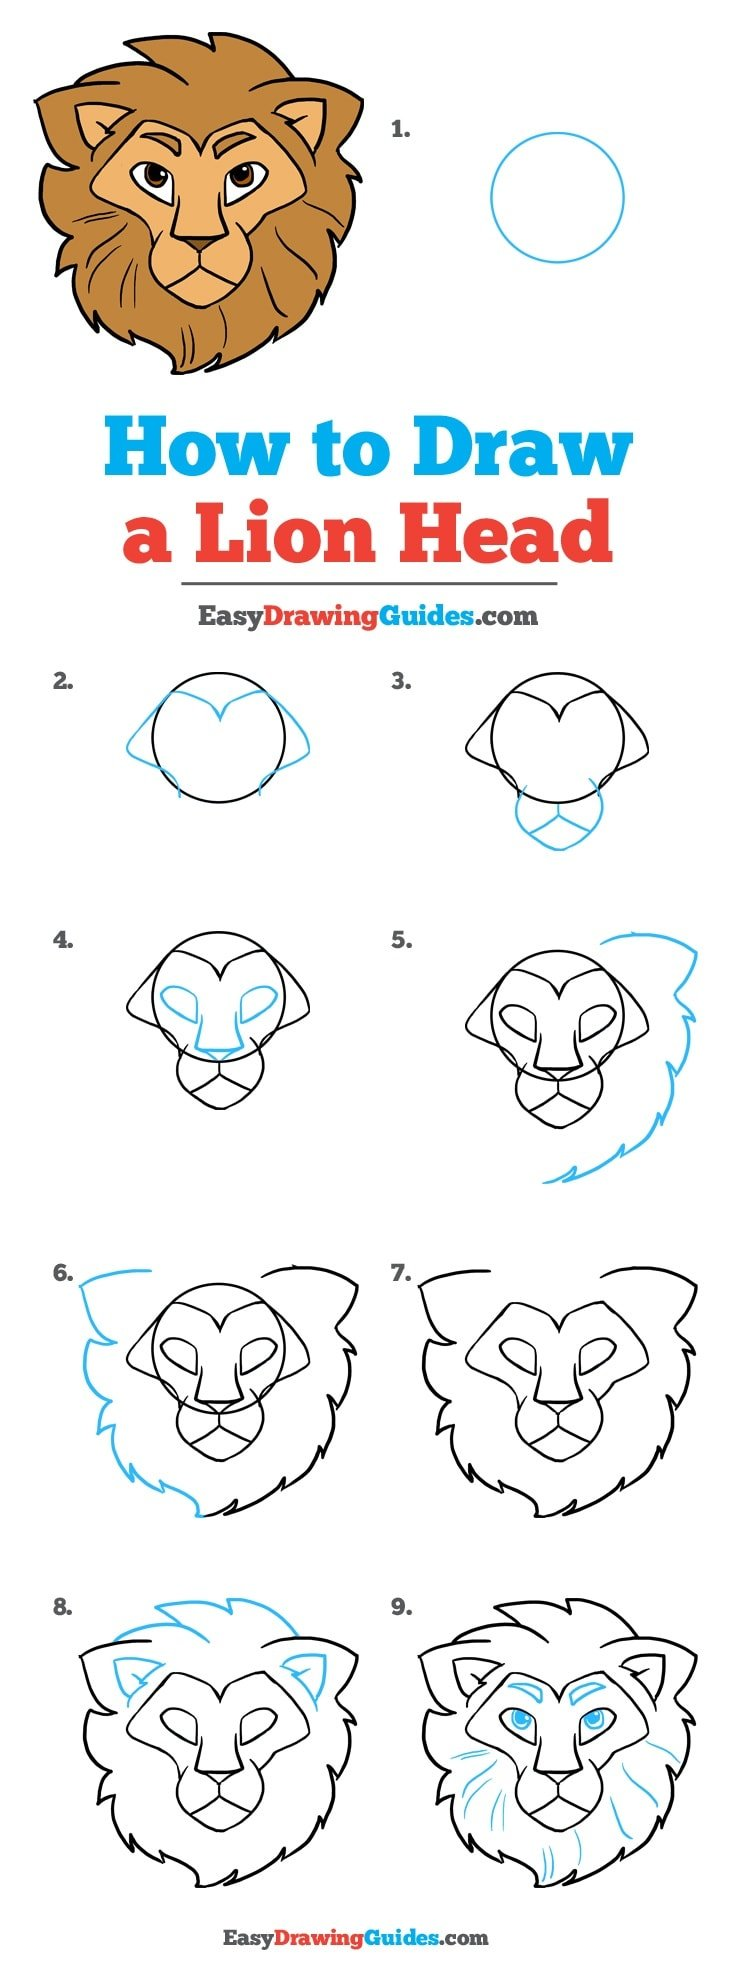 How to Draw a Lion Head: Step by Step tutorial